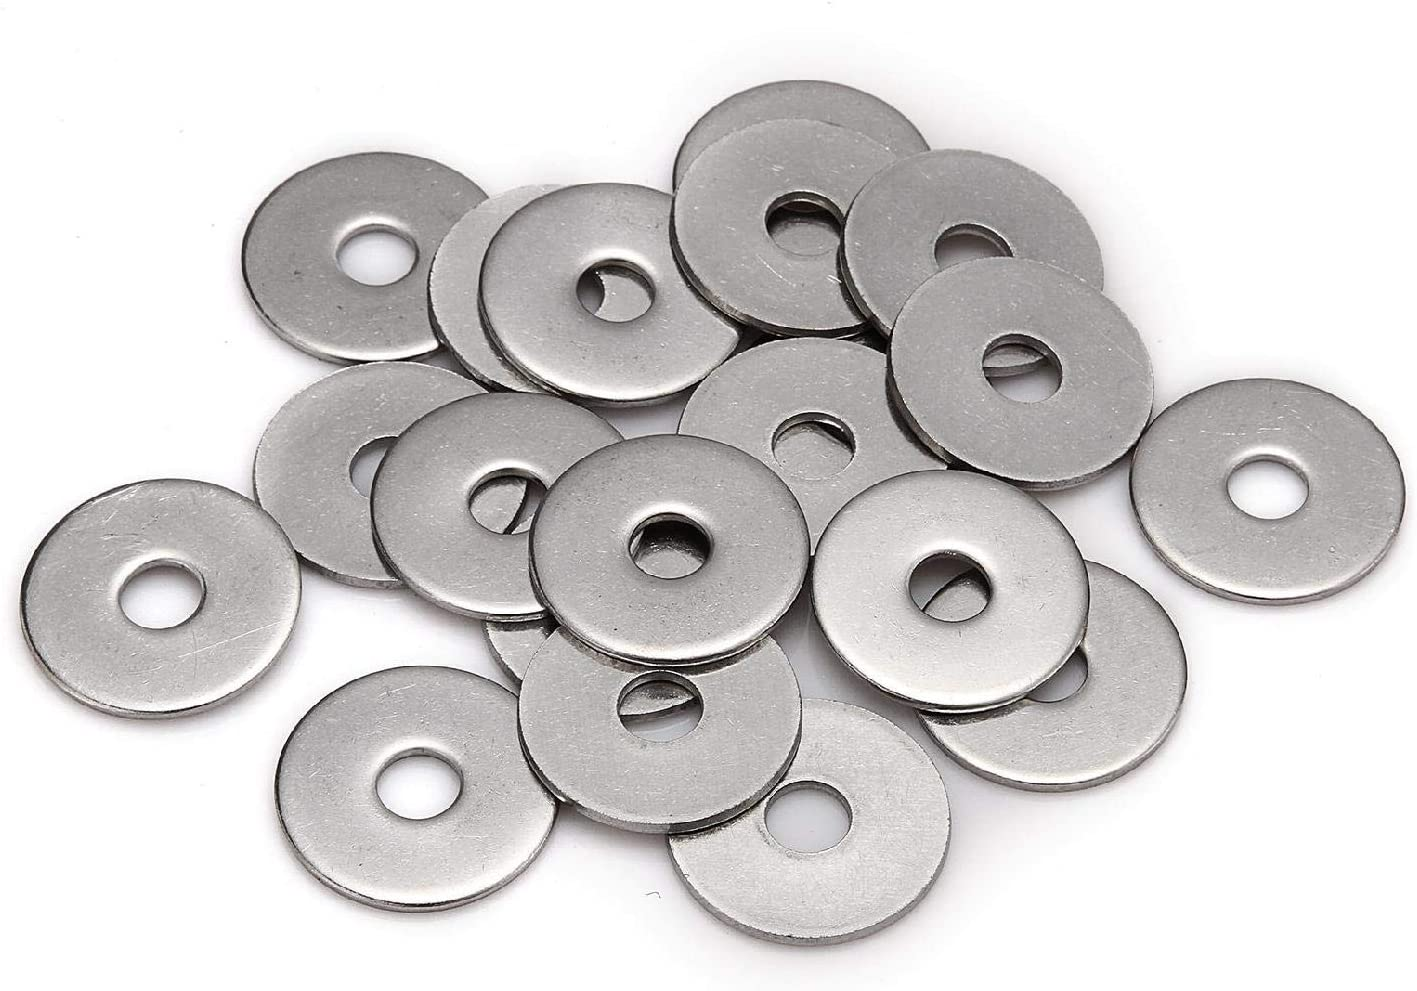 50 x Heavy Duty 3/4'' Table 4, Imperial Flat Washer, BZP for Nuts Bolts & Screws